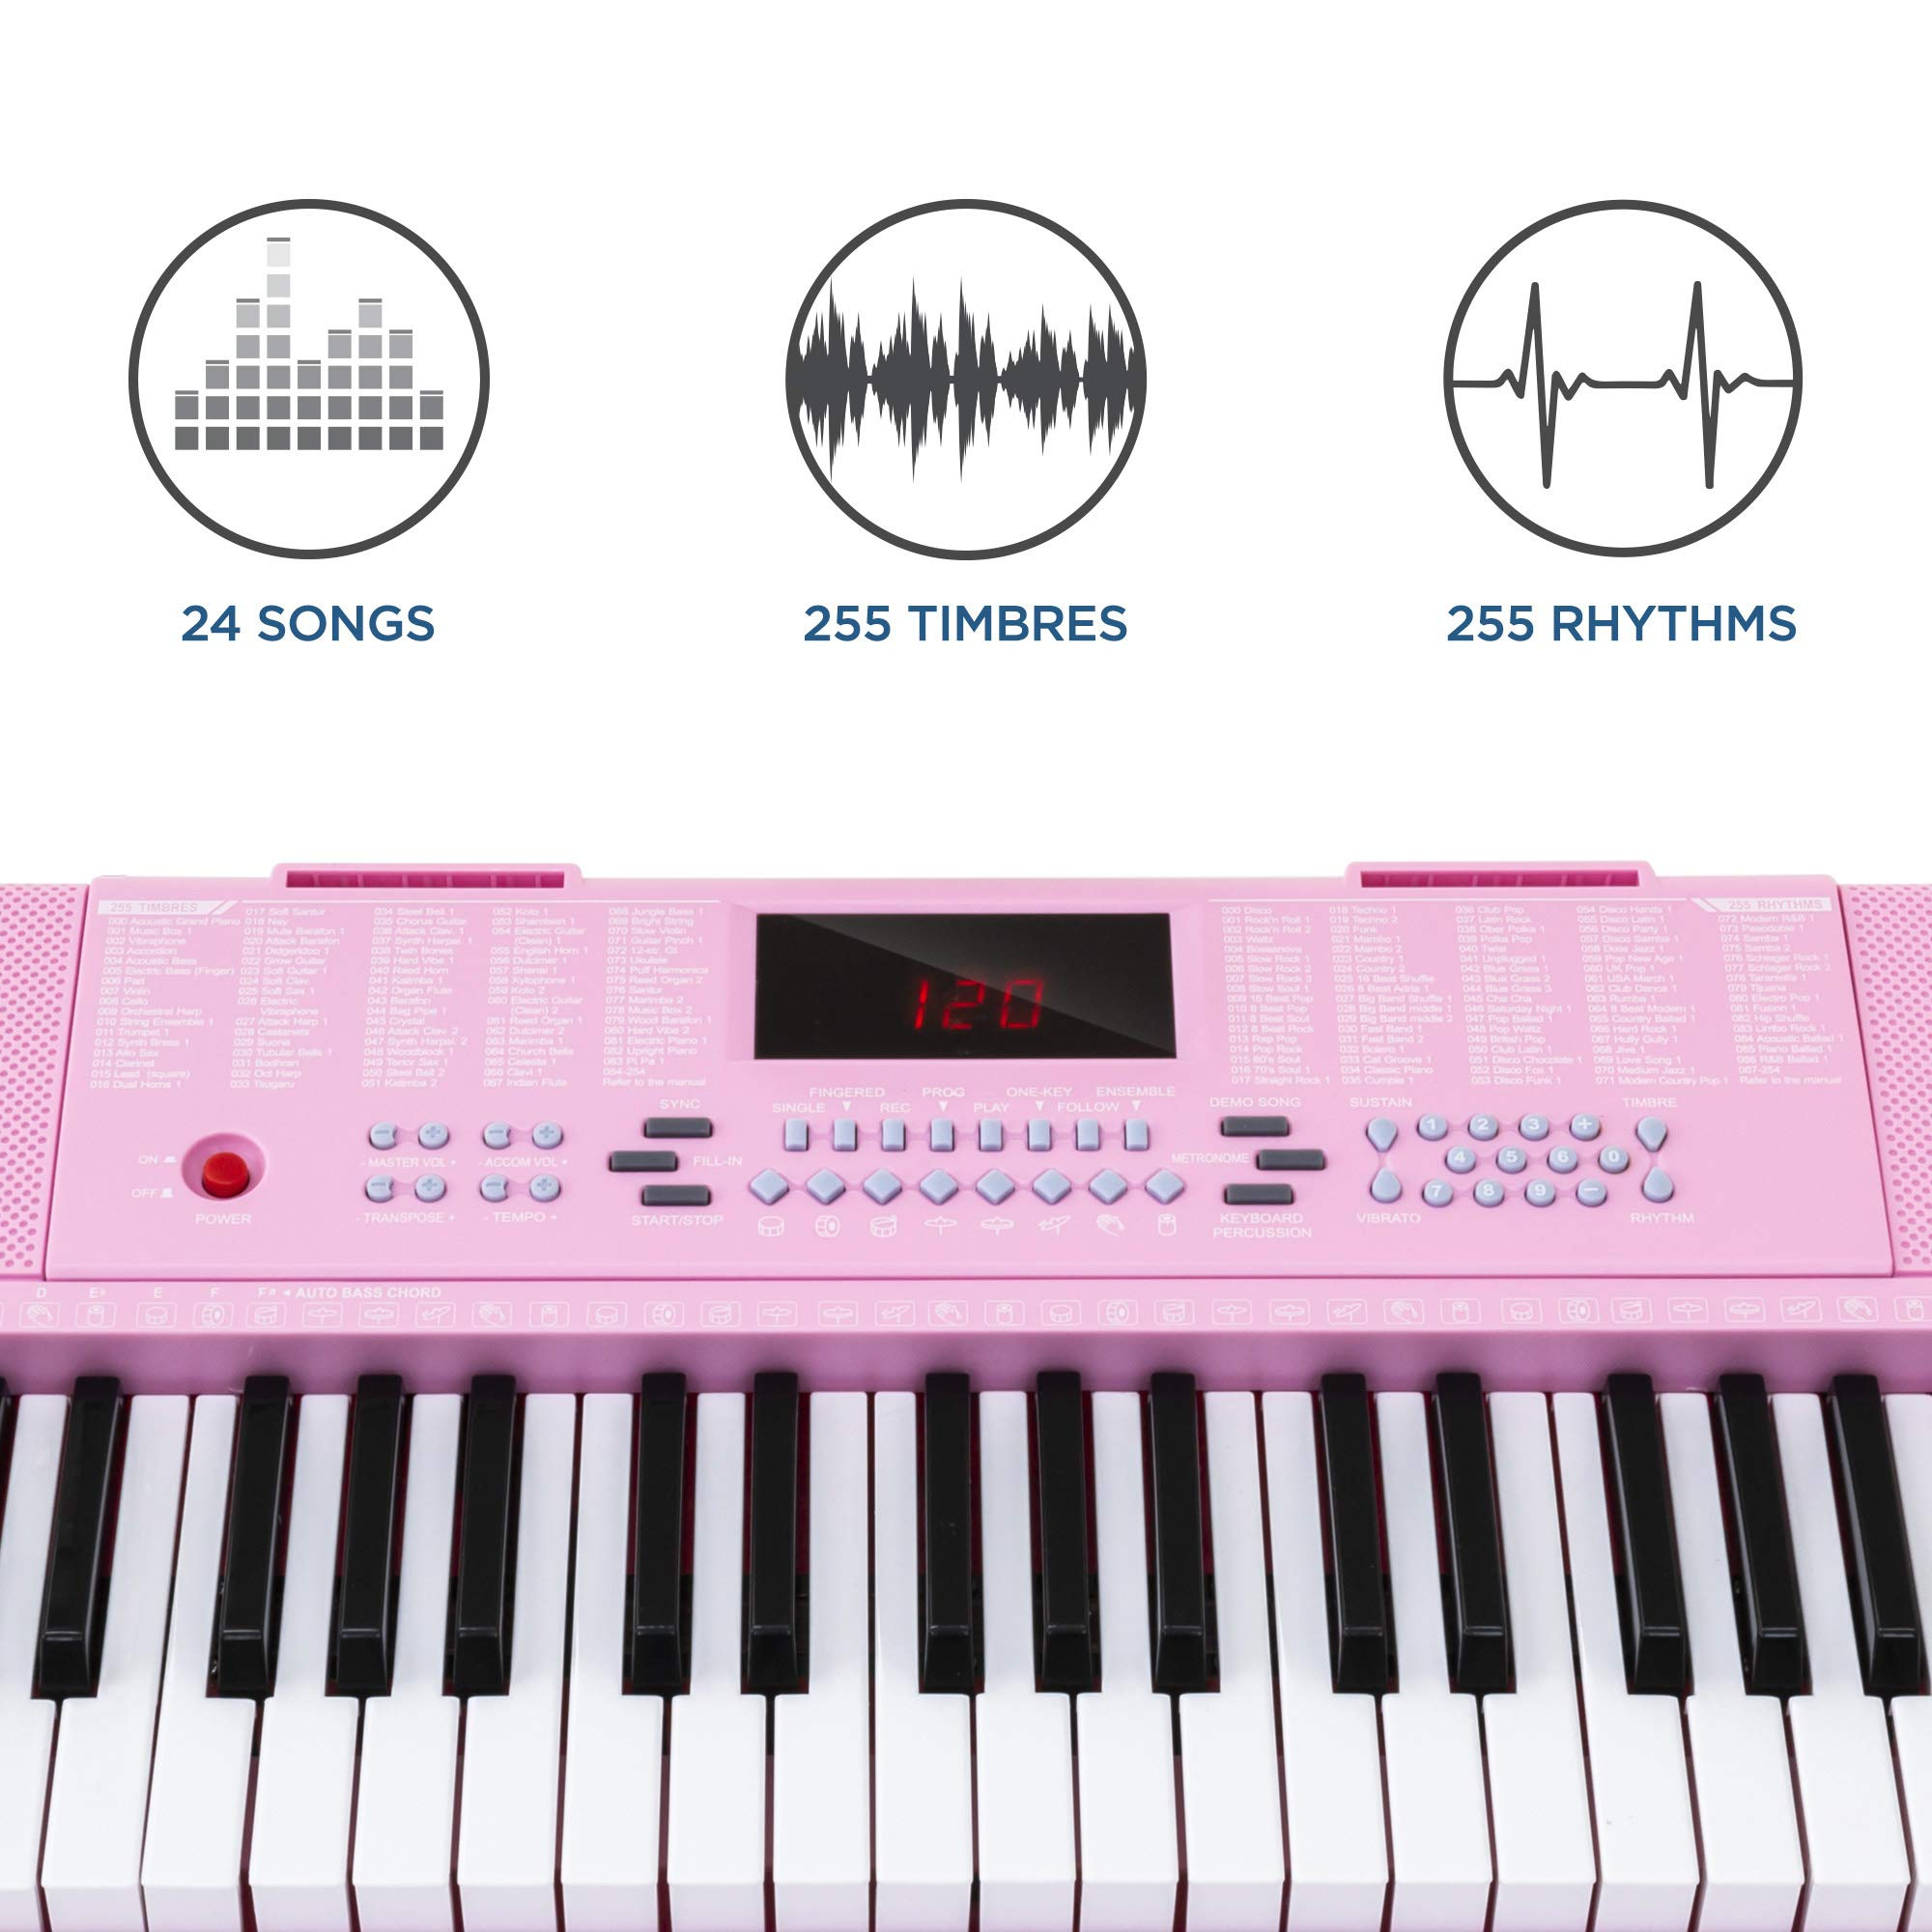 Best Choice Products 61-Key Portable Electronic Keyboard Piano with LED Screen, Record & Playback Function, Microphone, Headphone Jack (Pink) by Best Choice Products (Image #3)